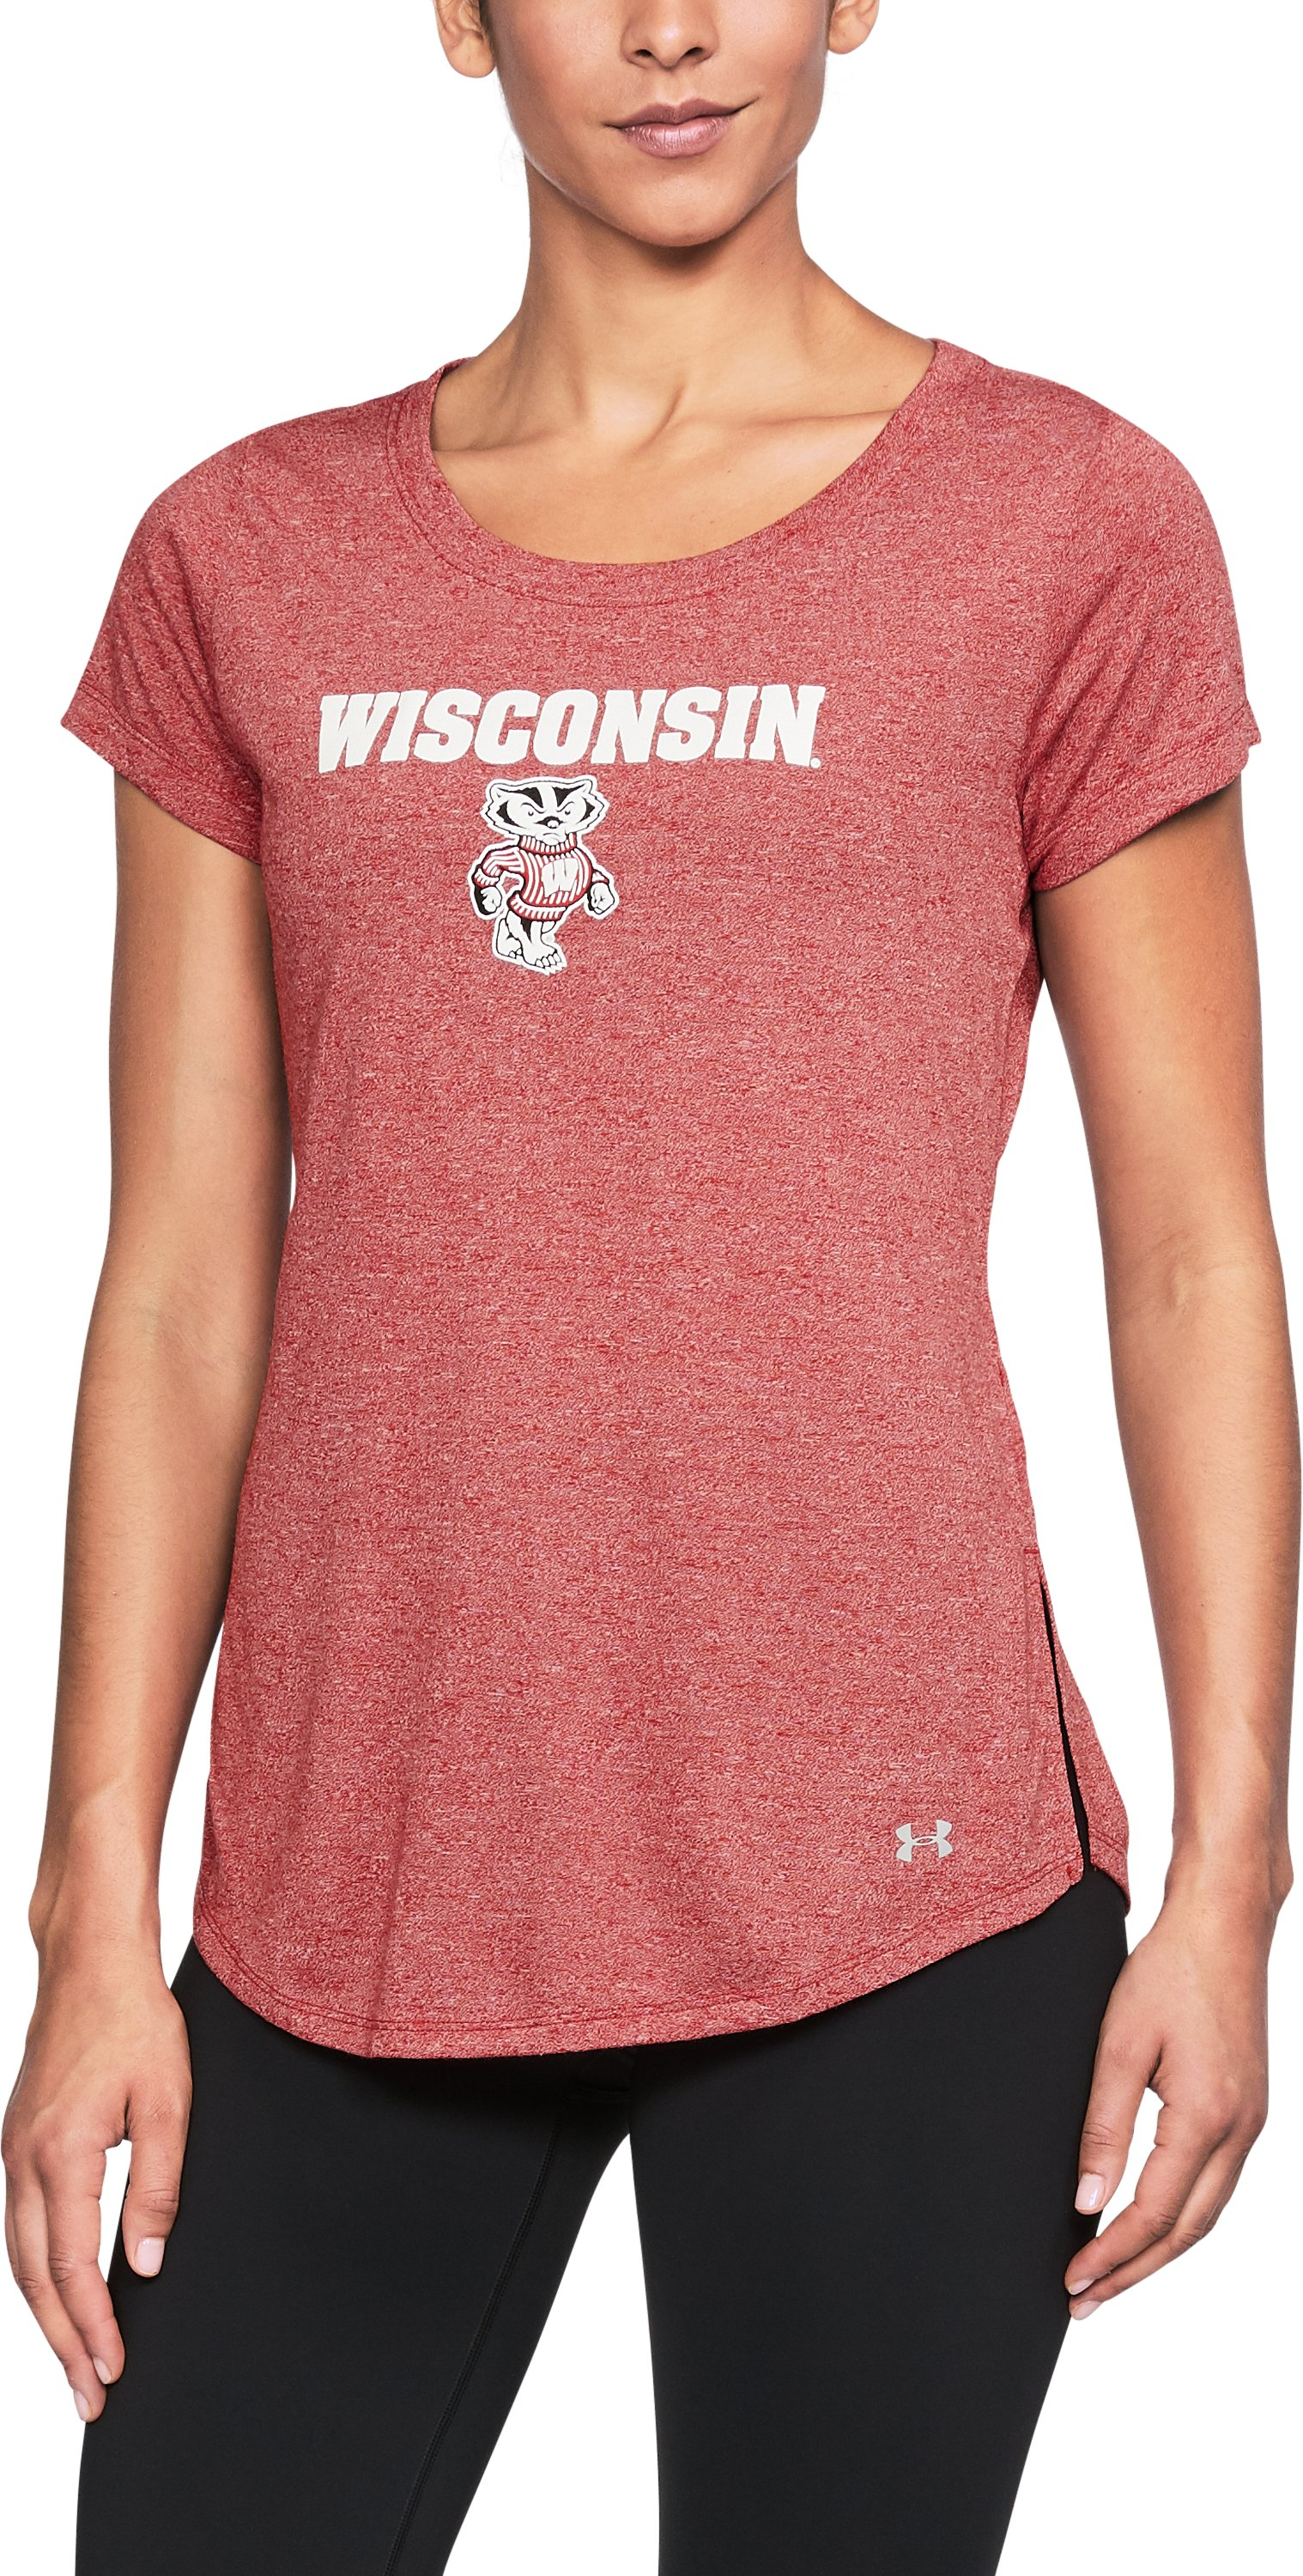 Women's Wisconsin Charged Cotton® Short Sleeve T-Shirt, Flawless,